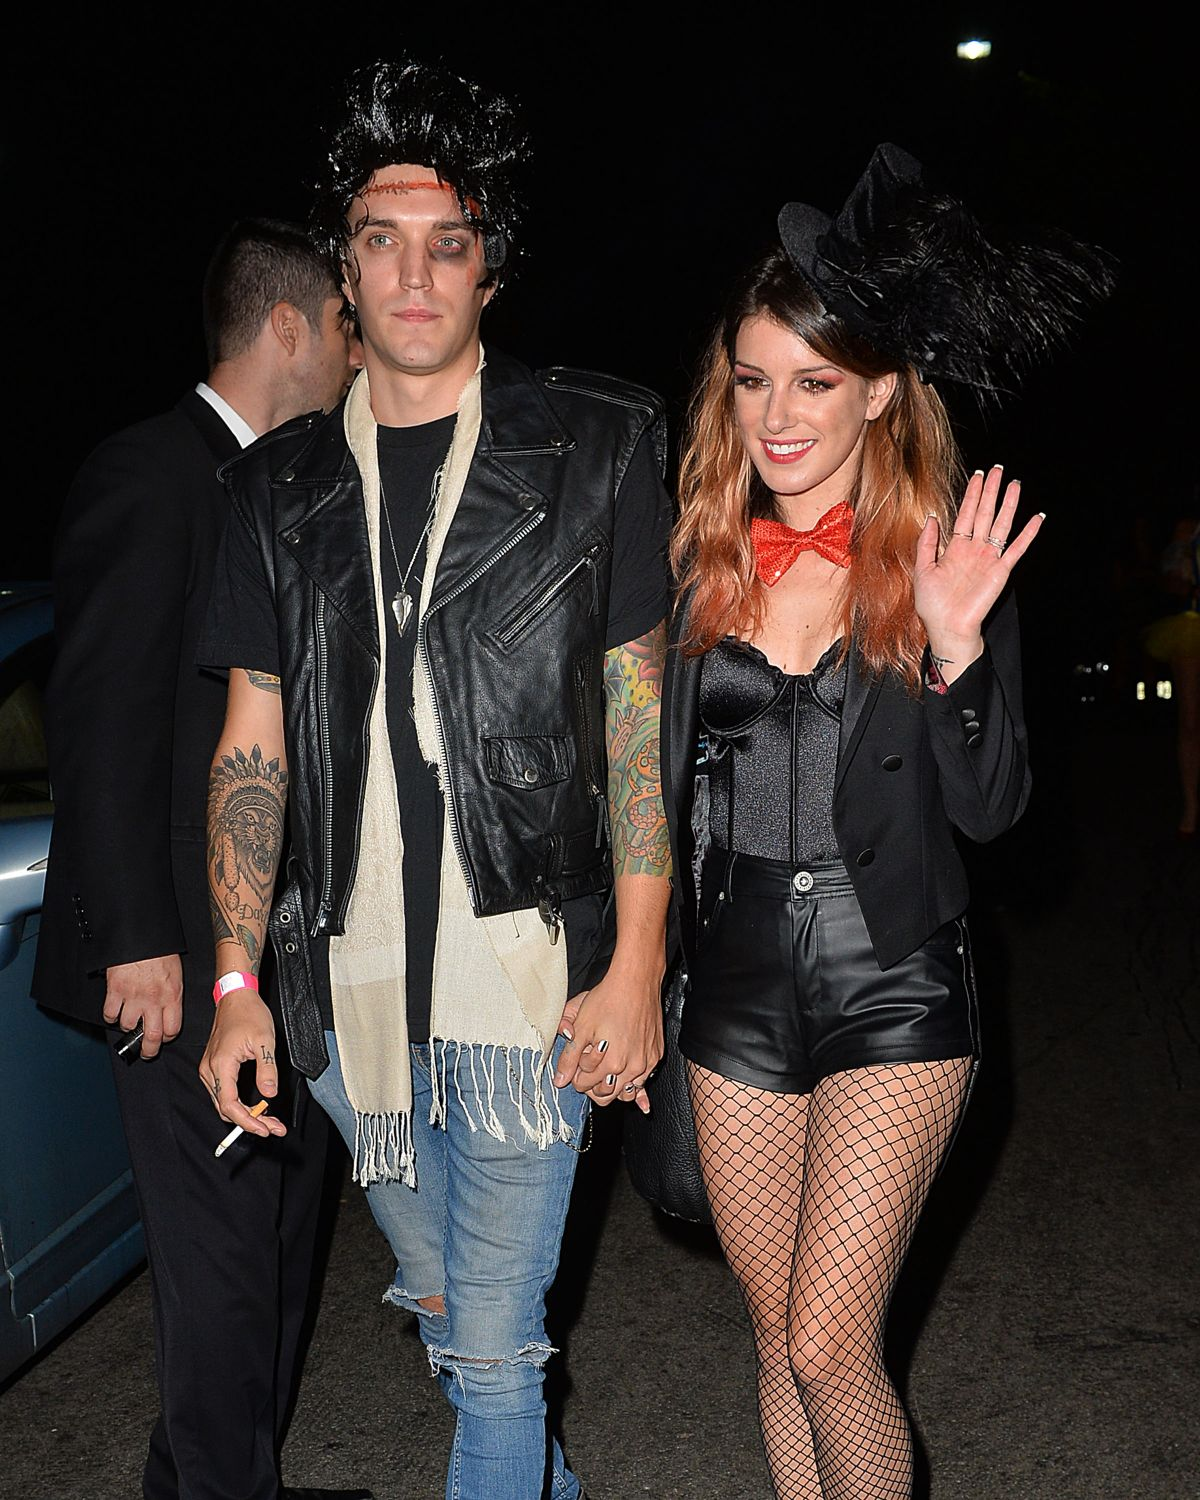 Shenae Grimes With Josh Beech Going To A Halloween Party